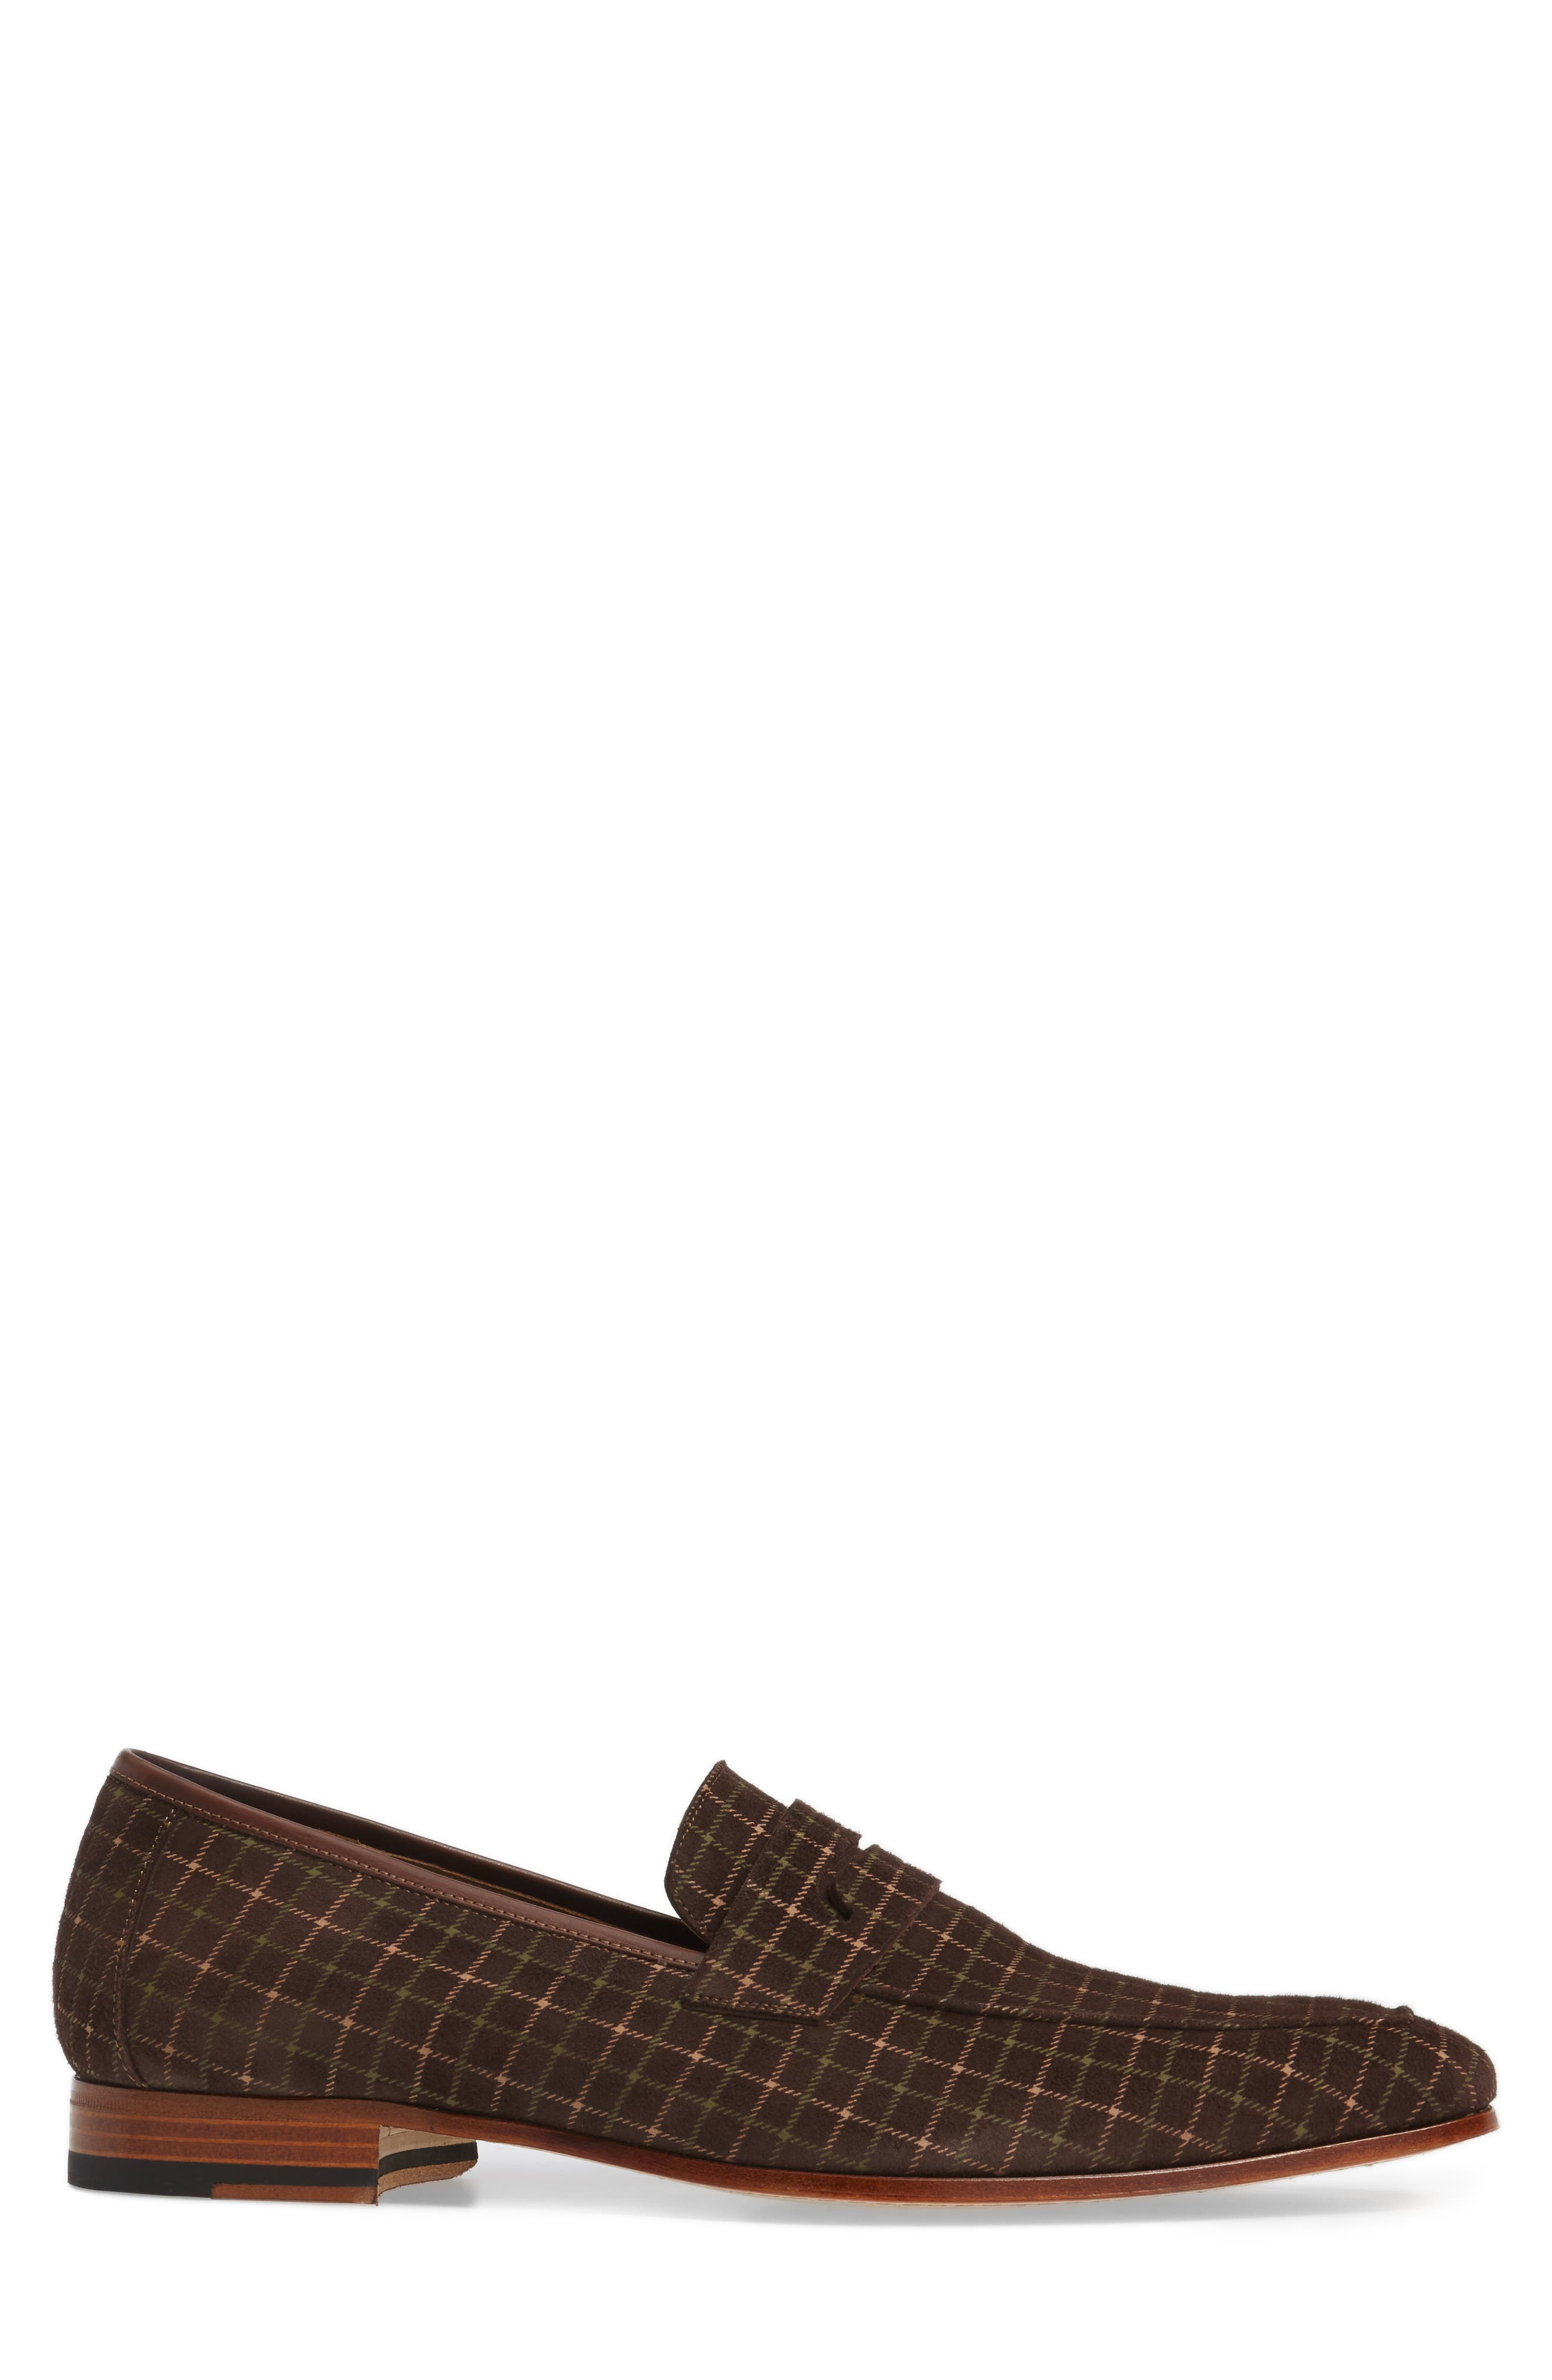 Galen Tattersall Penny Loafer,                             Alternate thumbnail 3, color,                             BROWN SUEDE